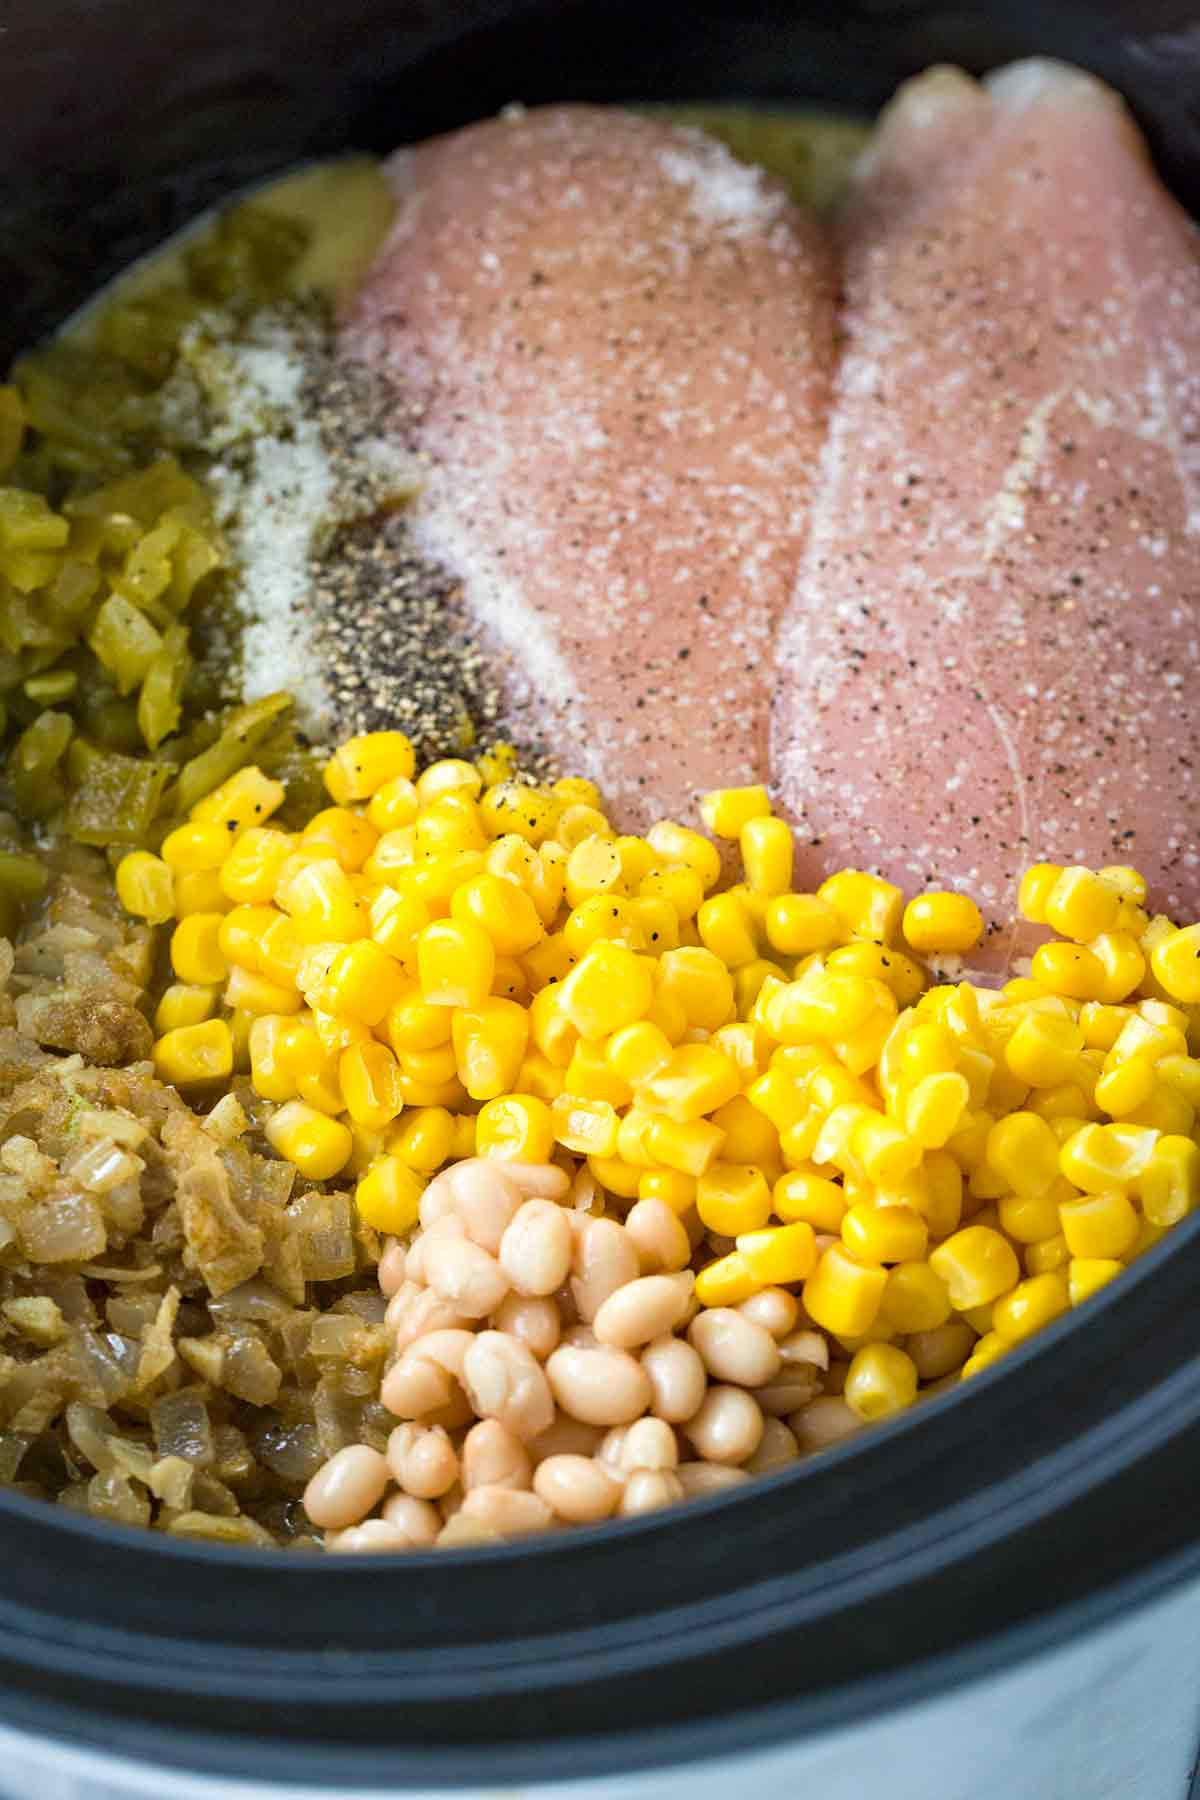 A crockpot with whole roasted jalapenos, tender beans, corn, and seasoned chicken breast.